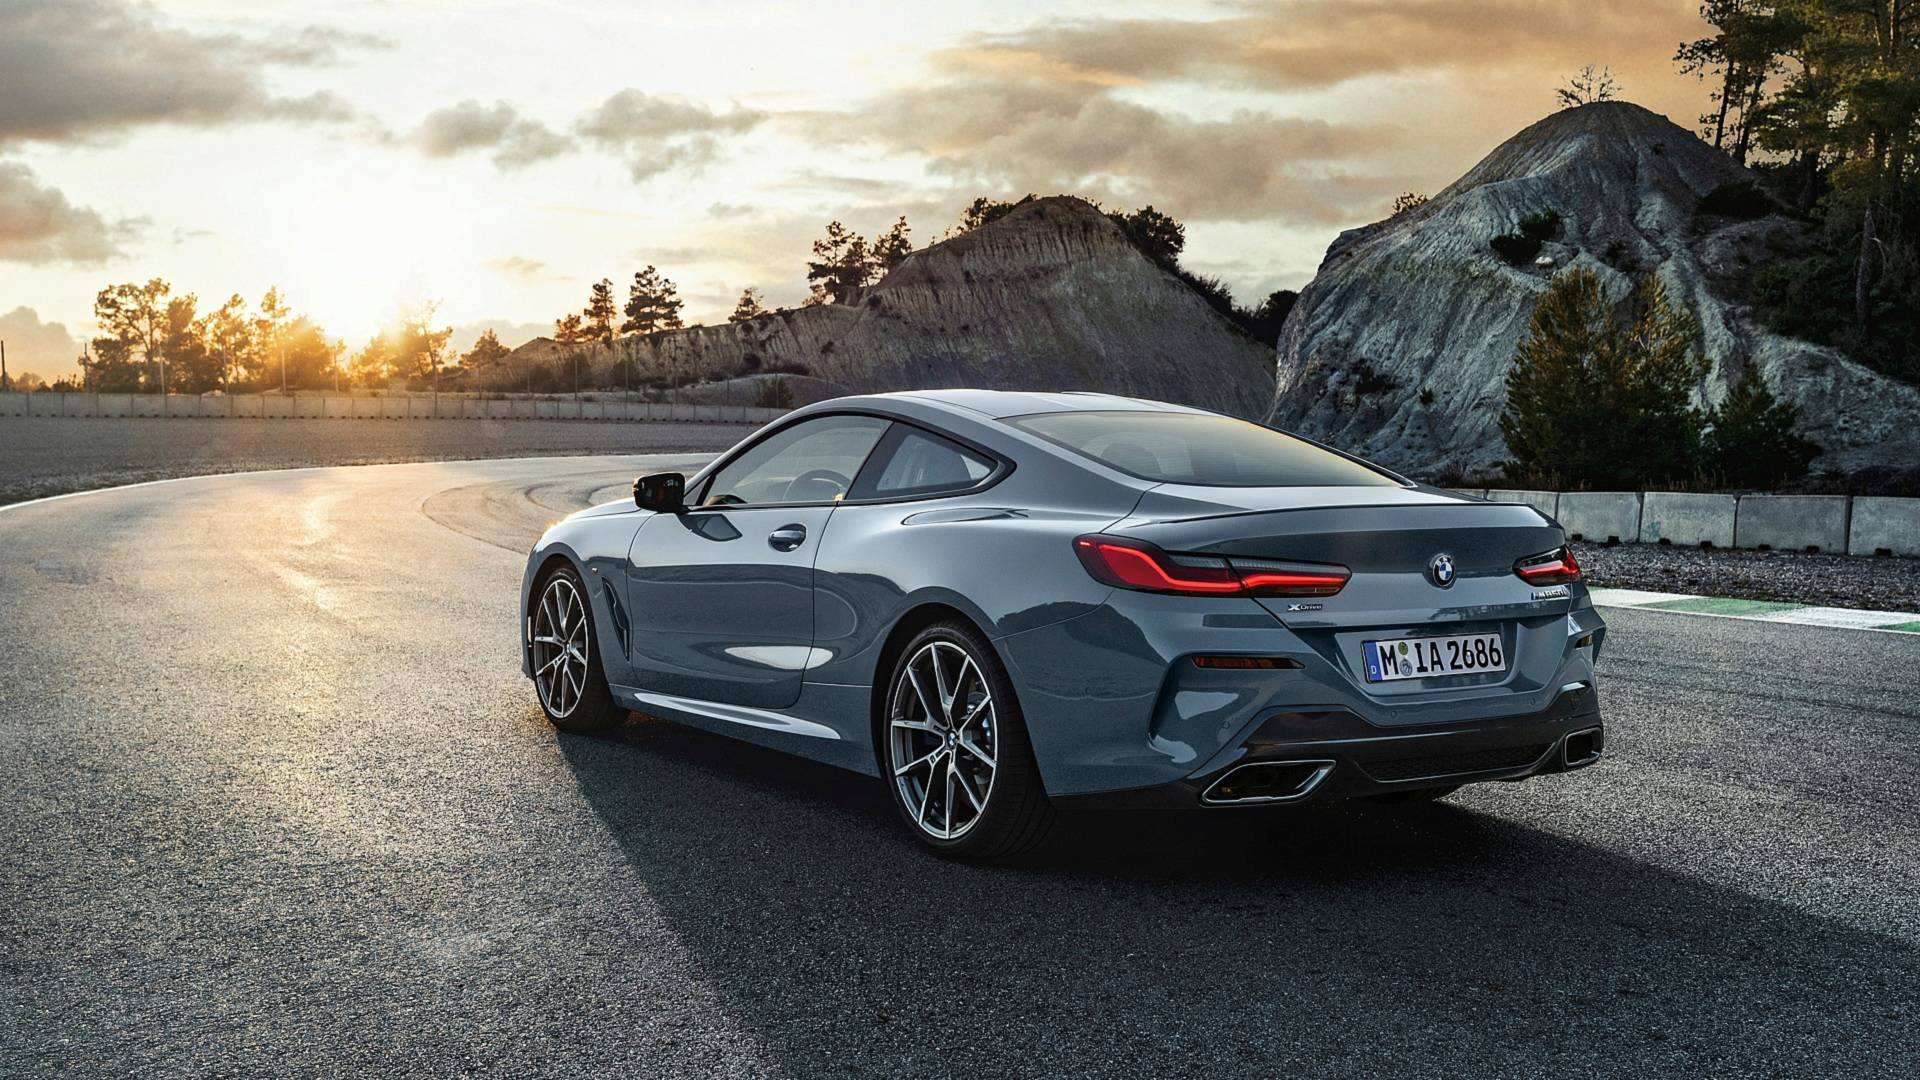 62 Best Review Bmw 8 2019 Redesign with Bmw 8 2019